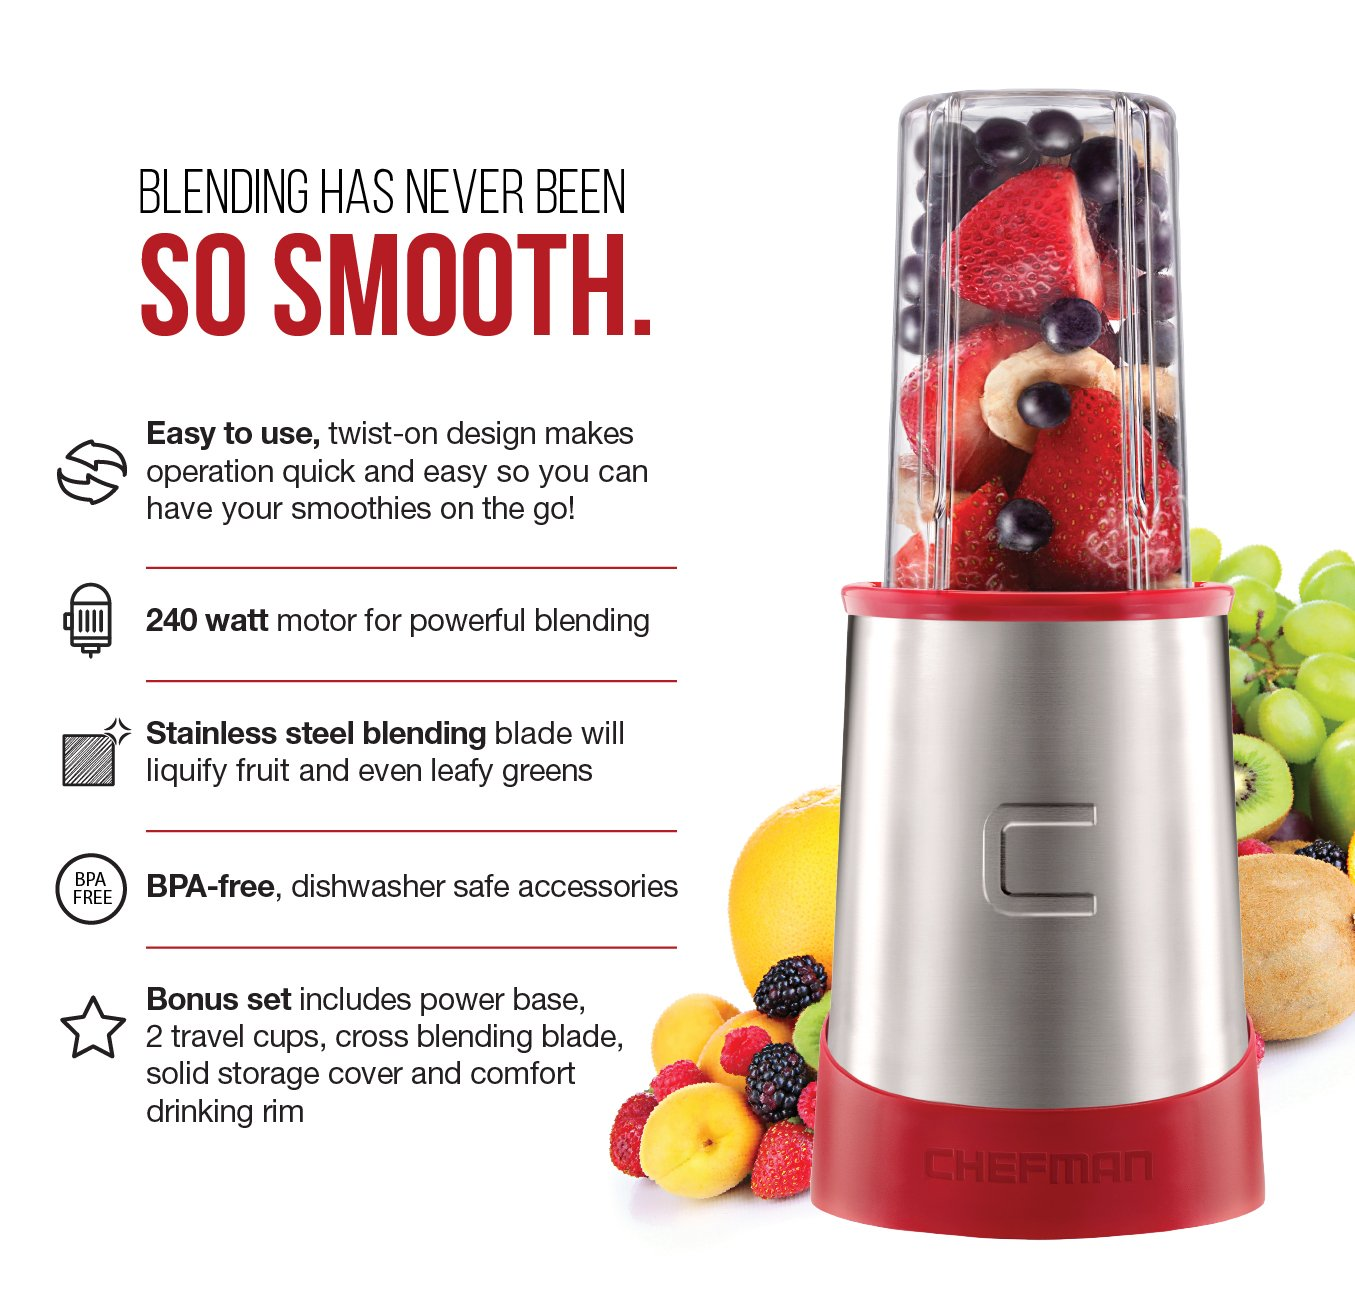 Chefman Ultimate Personal Smoothie Blender, Single Serve, Stainless Steel Blending Blade, 2 Travel Cups with Lids, Solid Storage Cover and Comfort Drinking Rim, 6 Piece - RJ28-6-SS-Red by Chefman (Image #2)